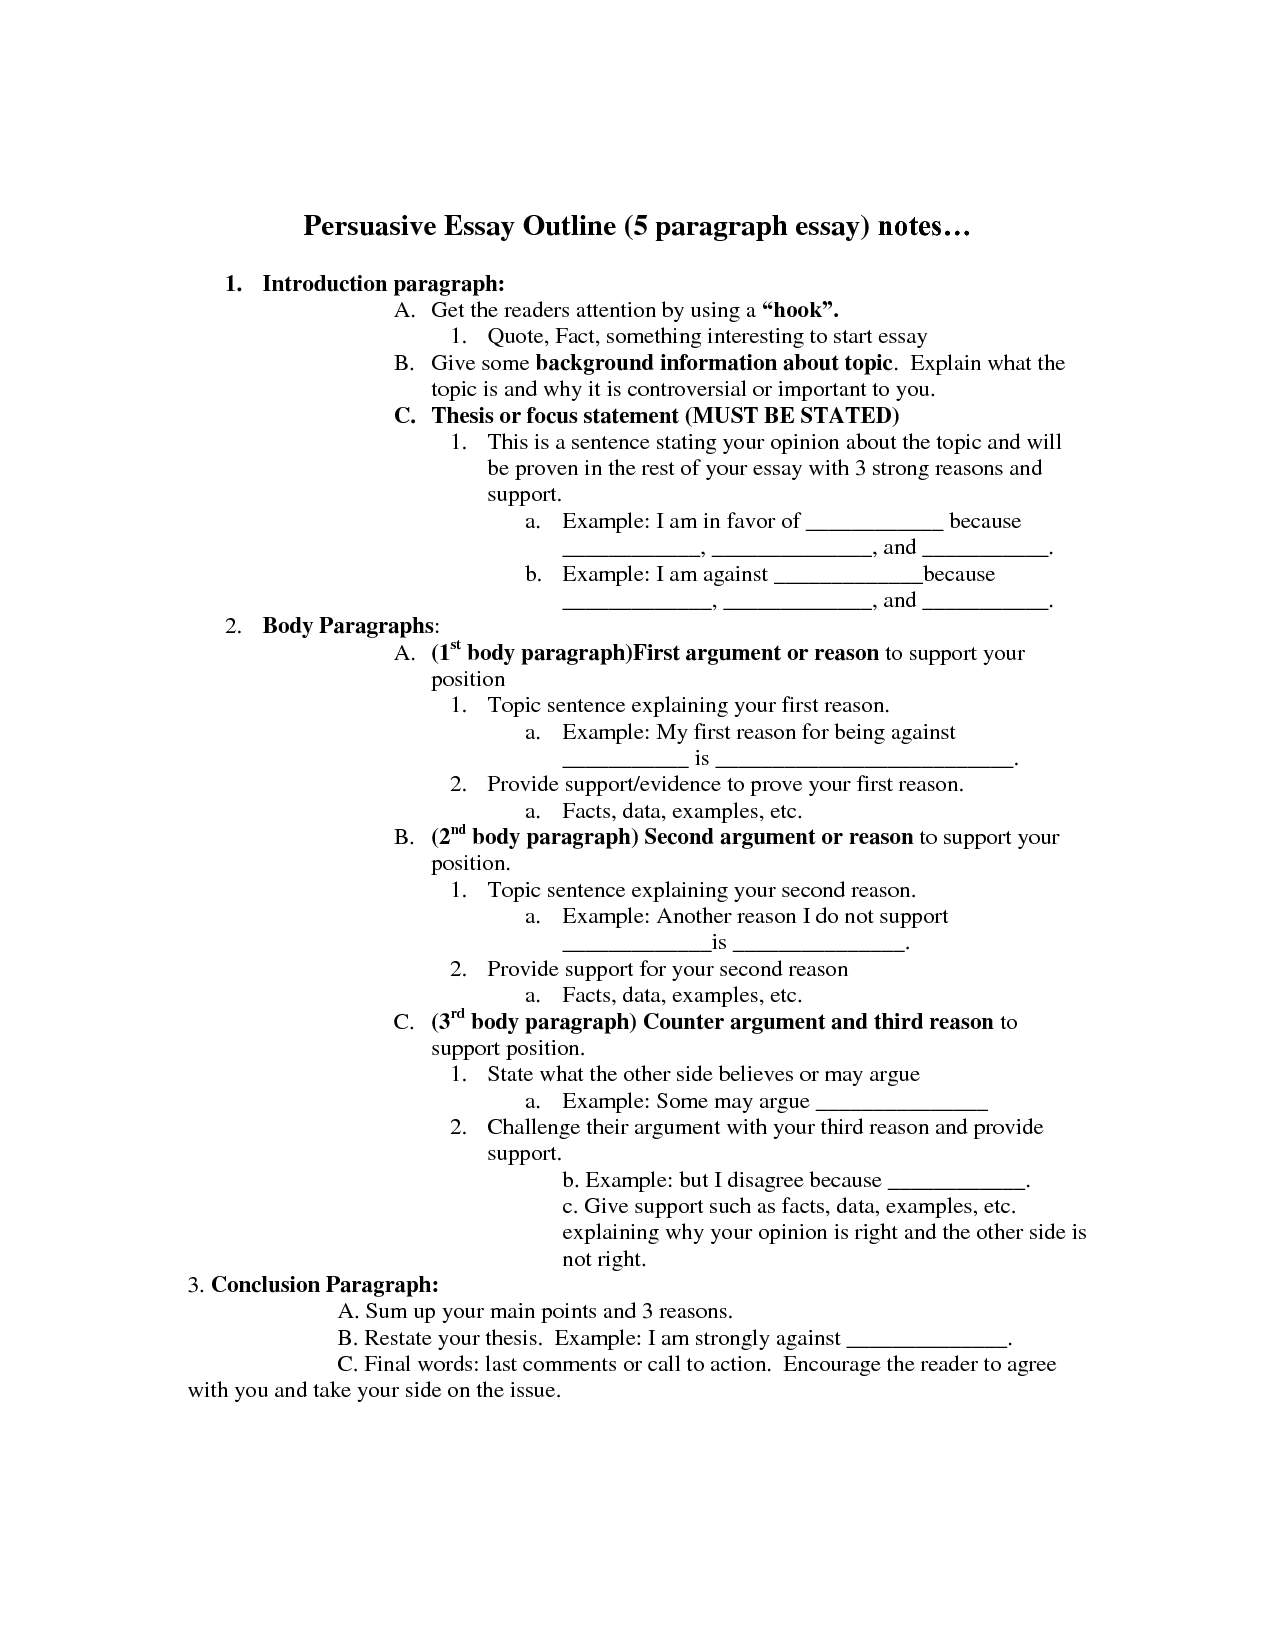 006 Persuasive Essay Outline Unbelievable 5 Paragraph Template Worksheet Pdf Full